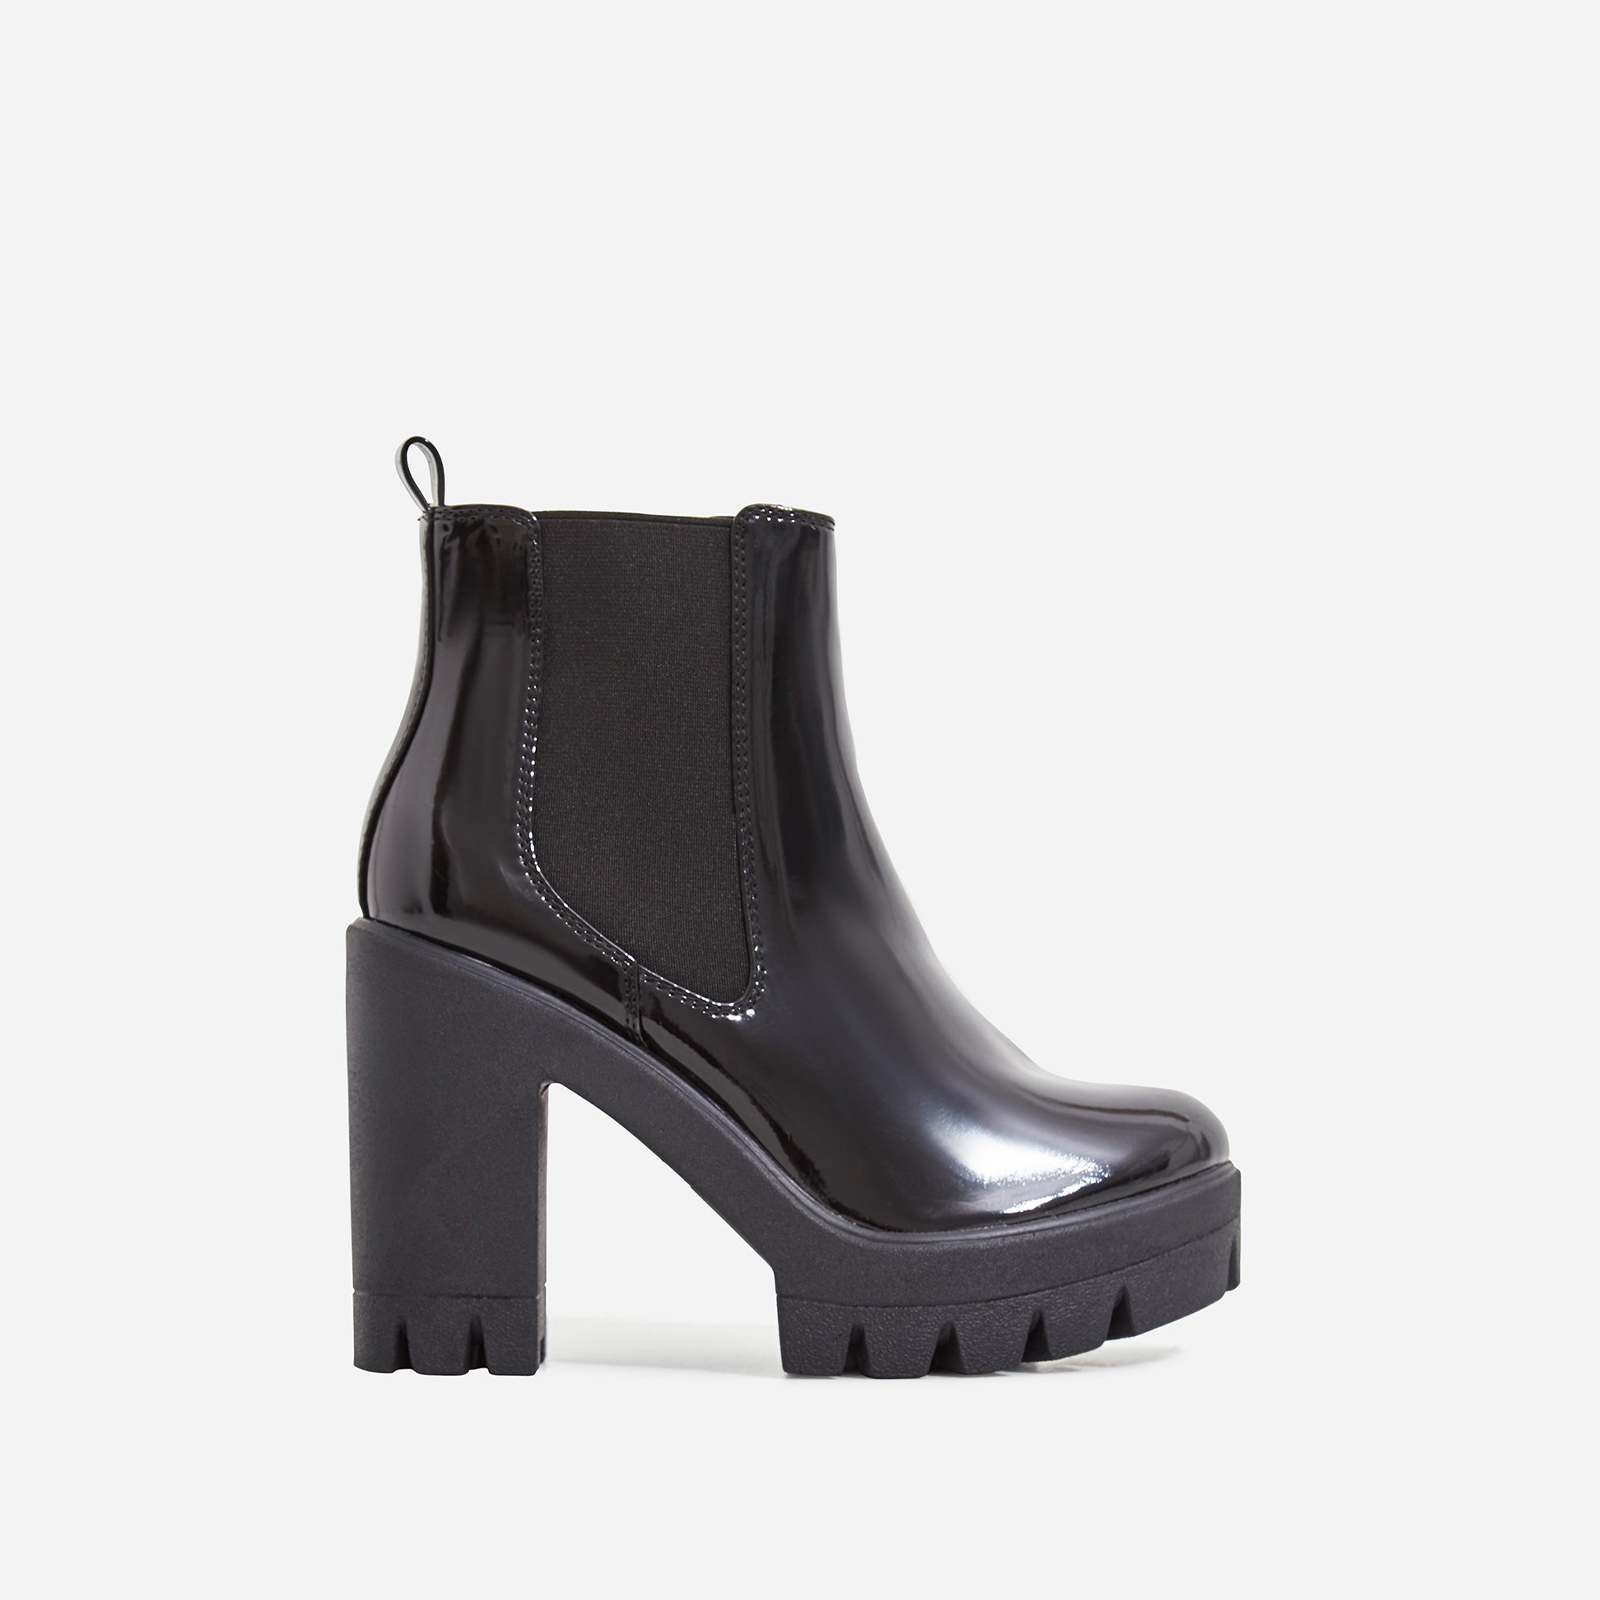 Liya Chunky Sole Ankle Chelsea Boot In Black Patent